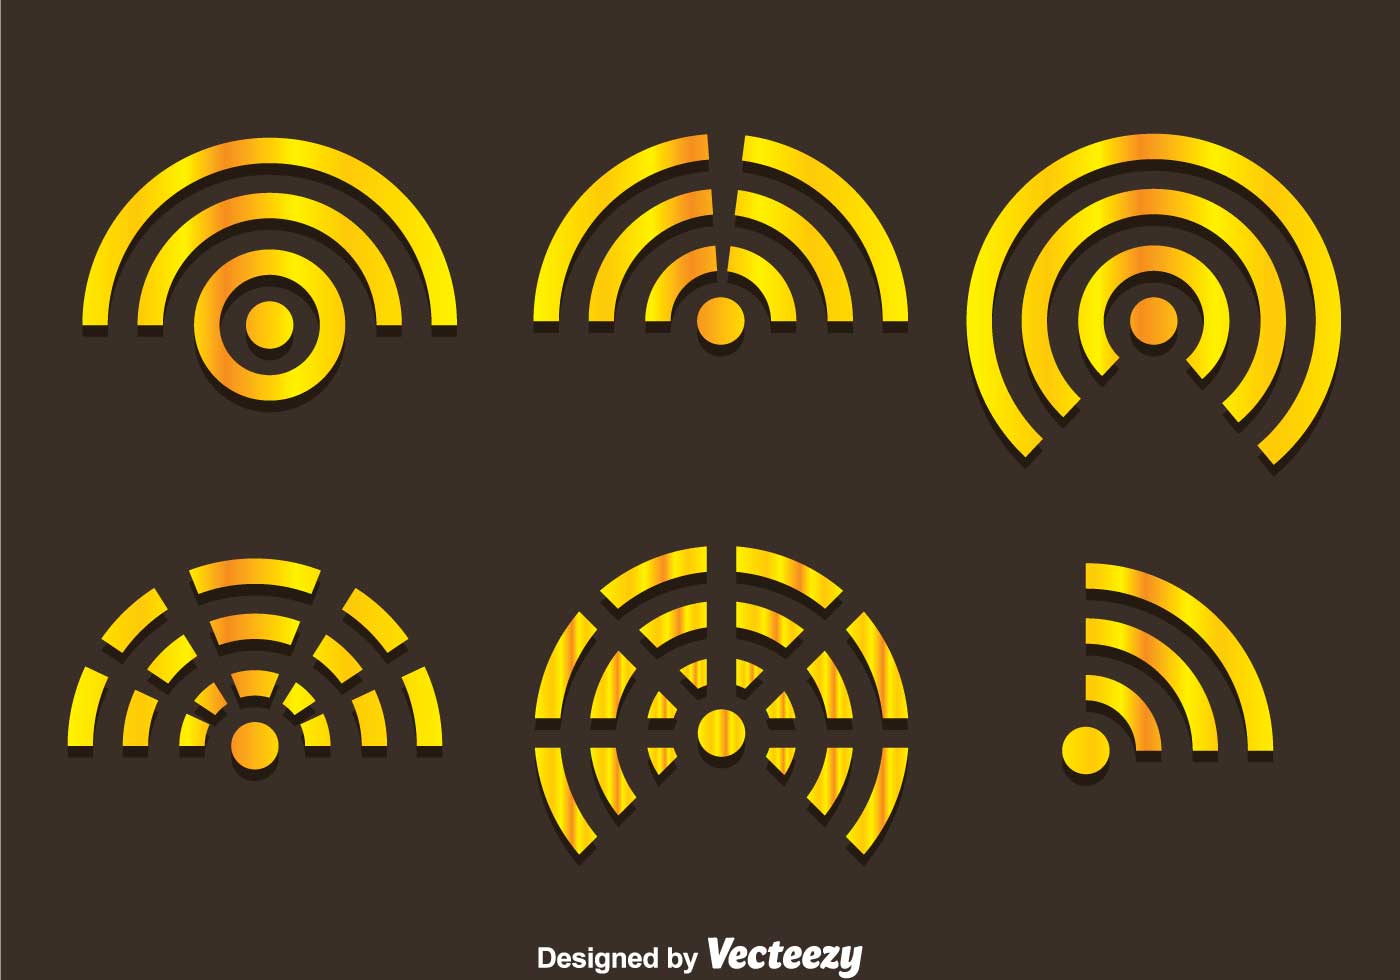 Gold Wifi Logo Vectors Download Free Vector Art Stock Graphics Amp Images